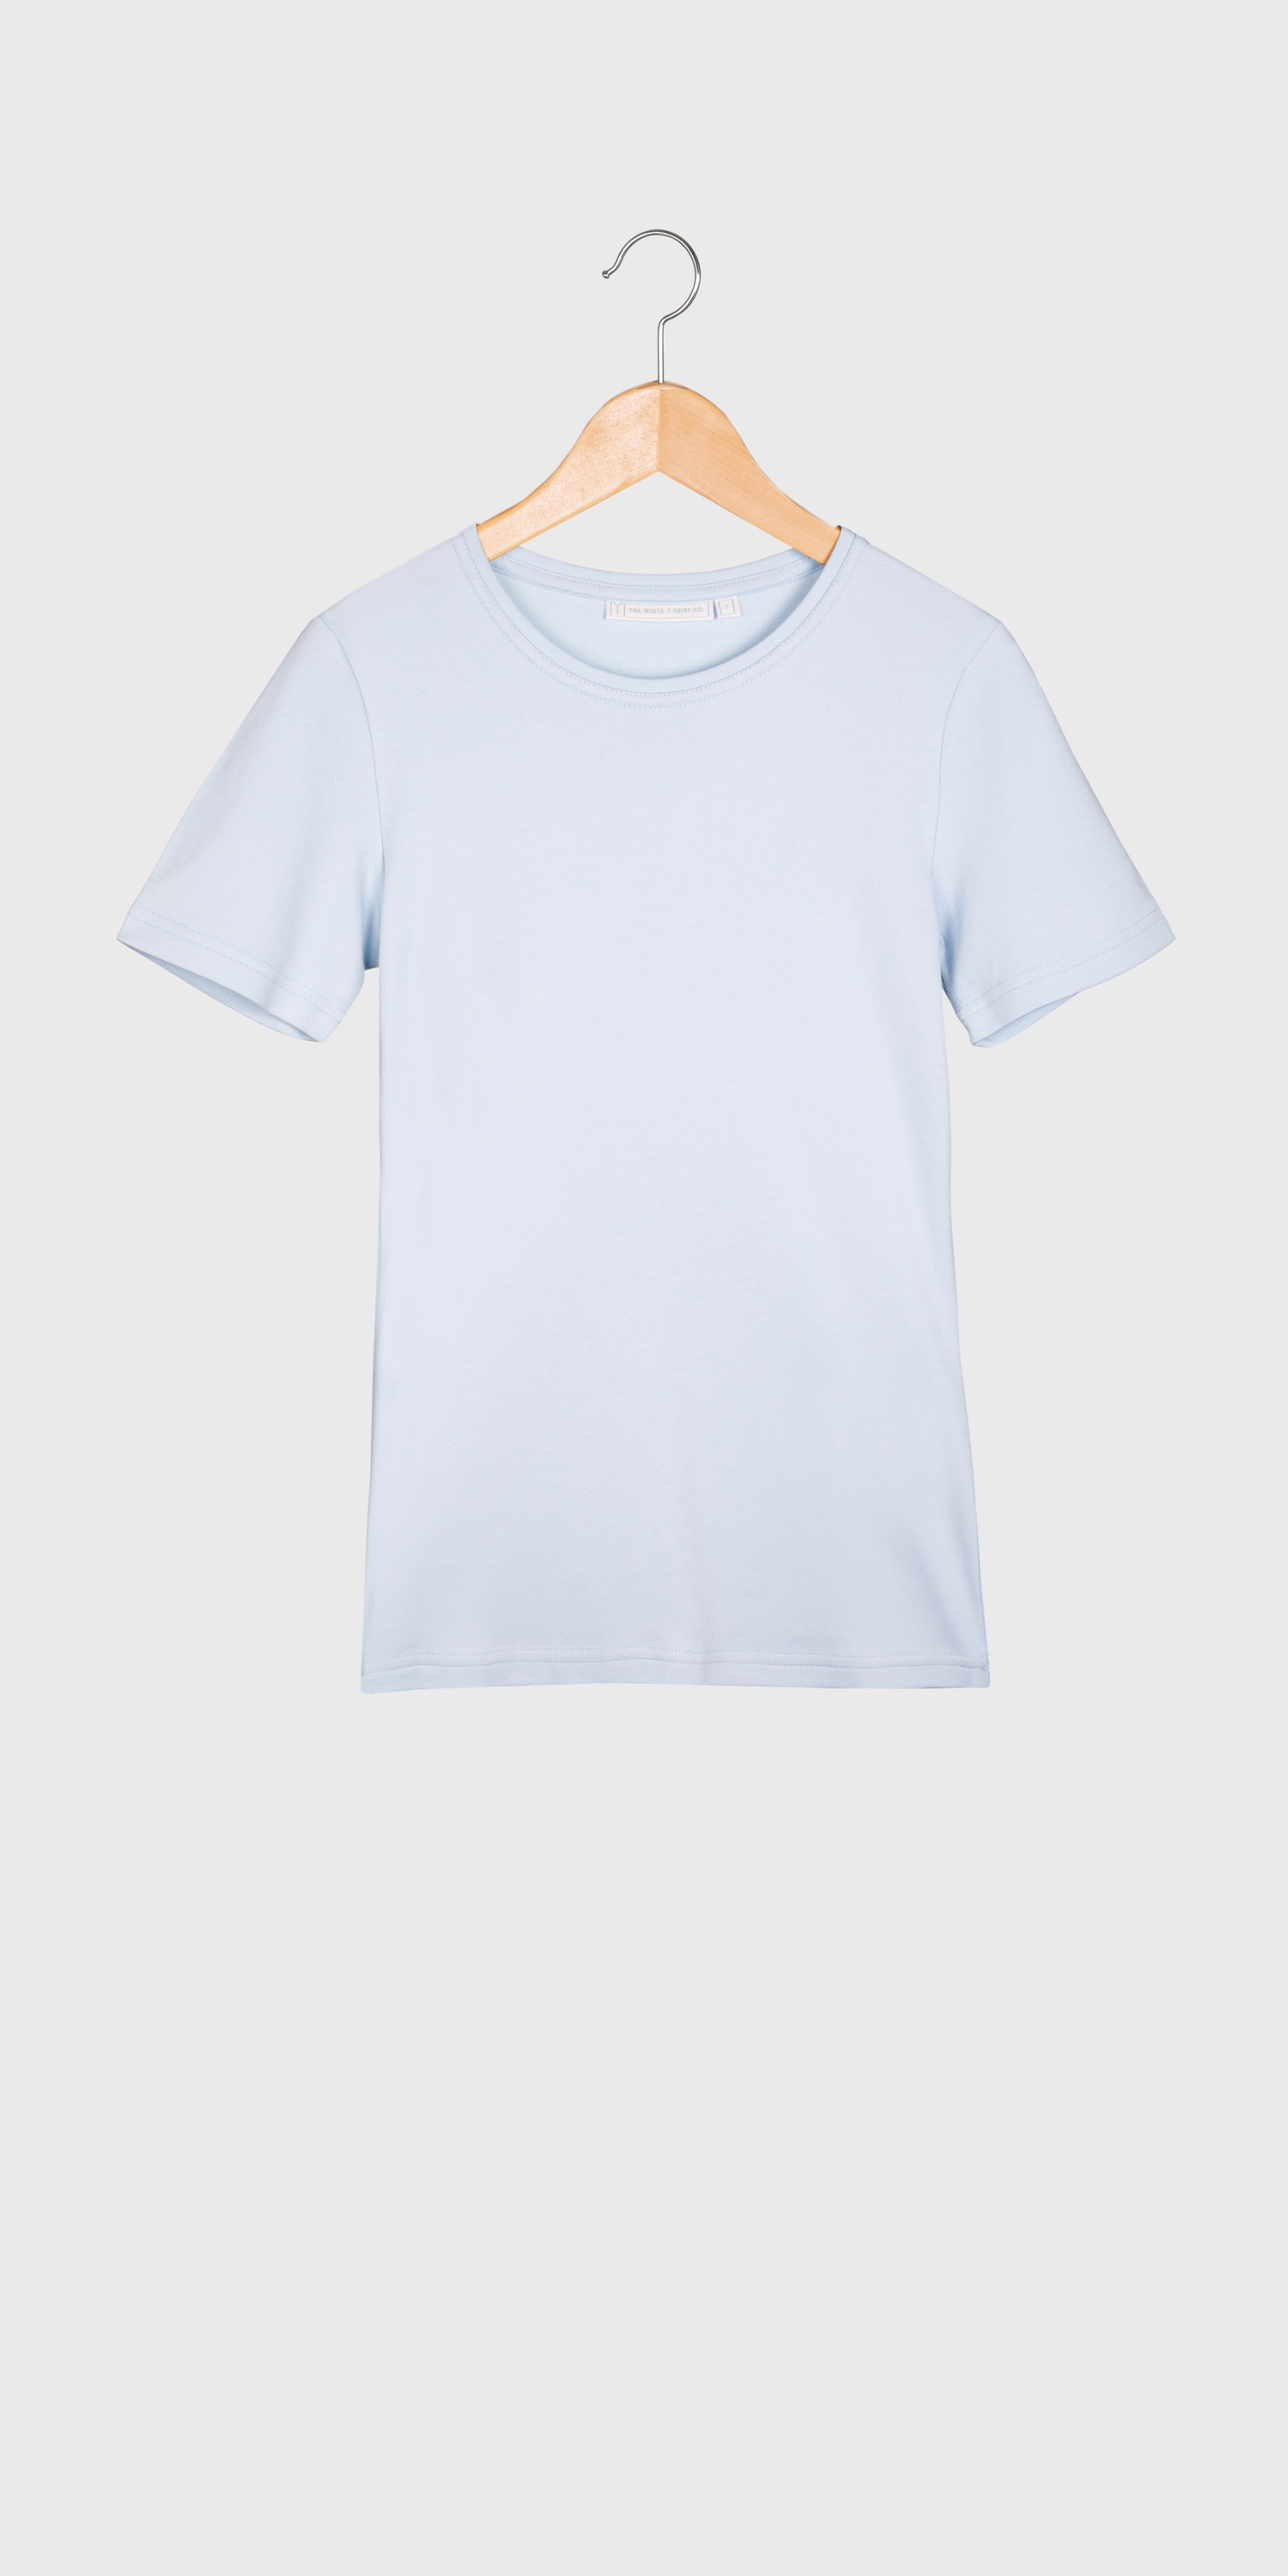 womens pale blue organic cotton t-shirt